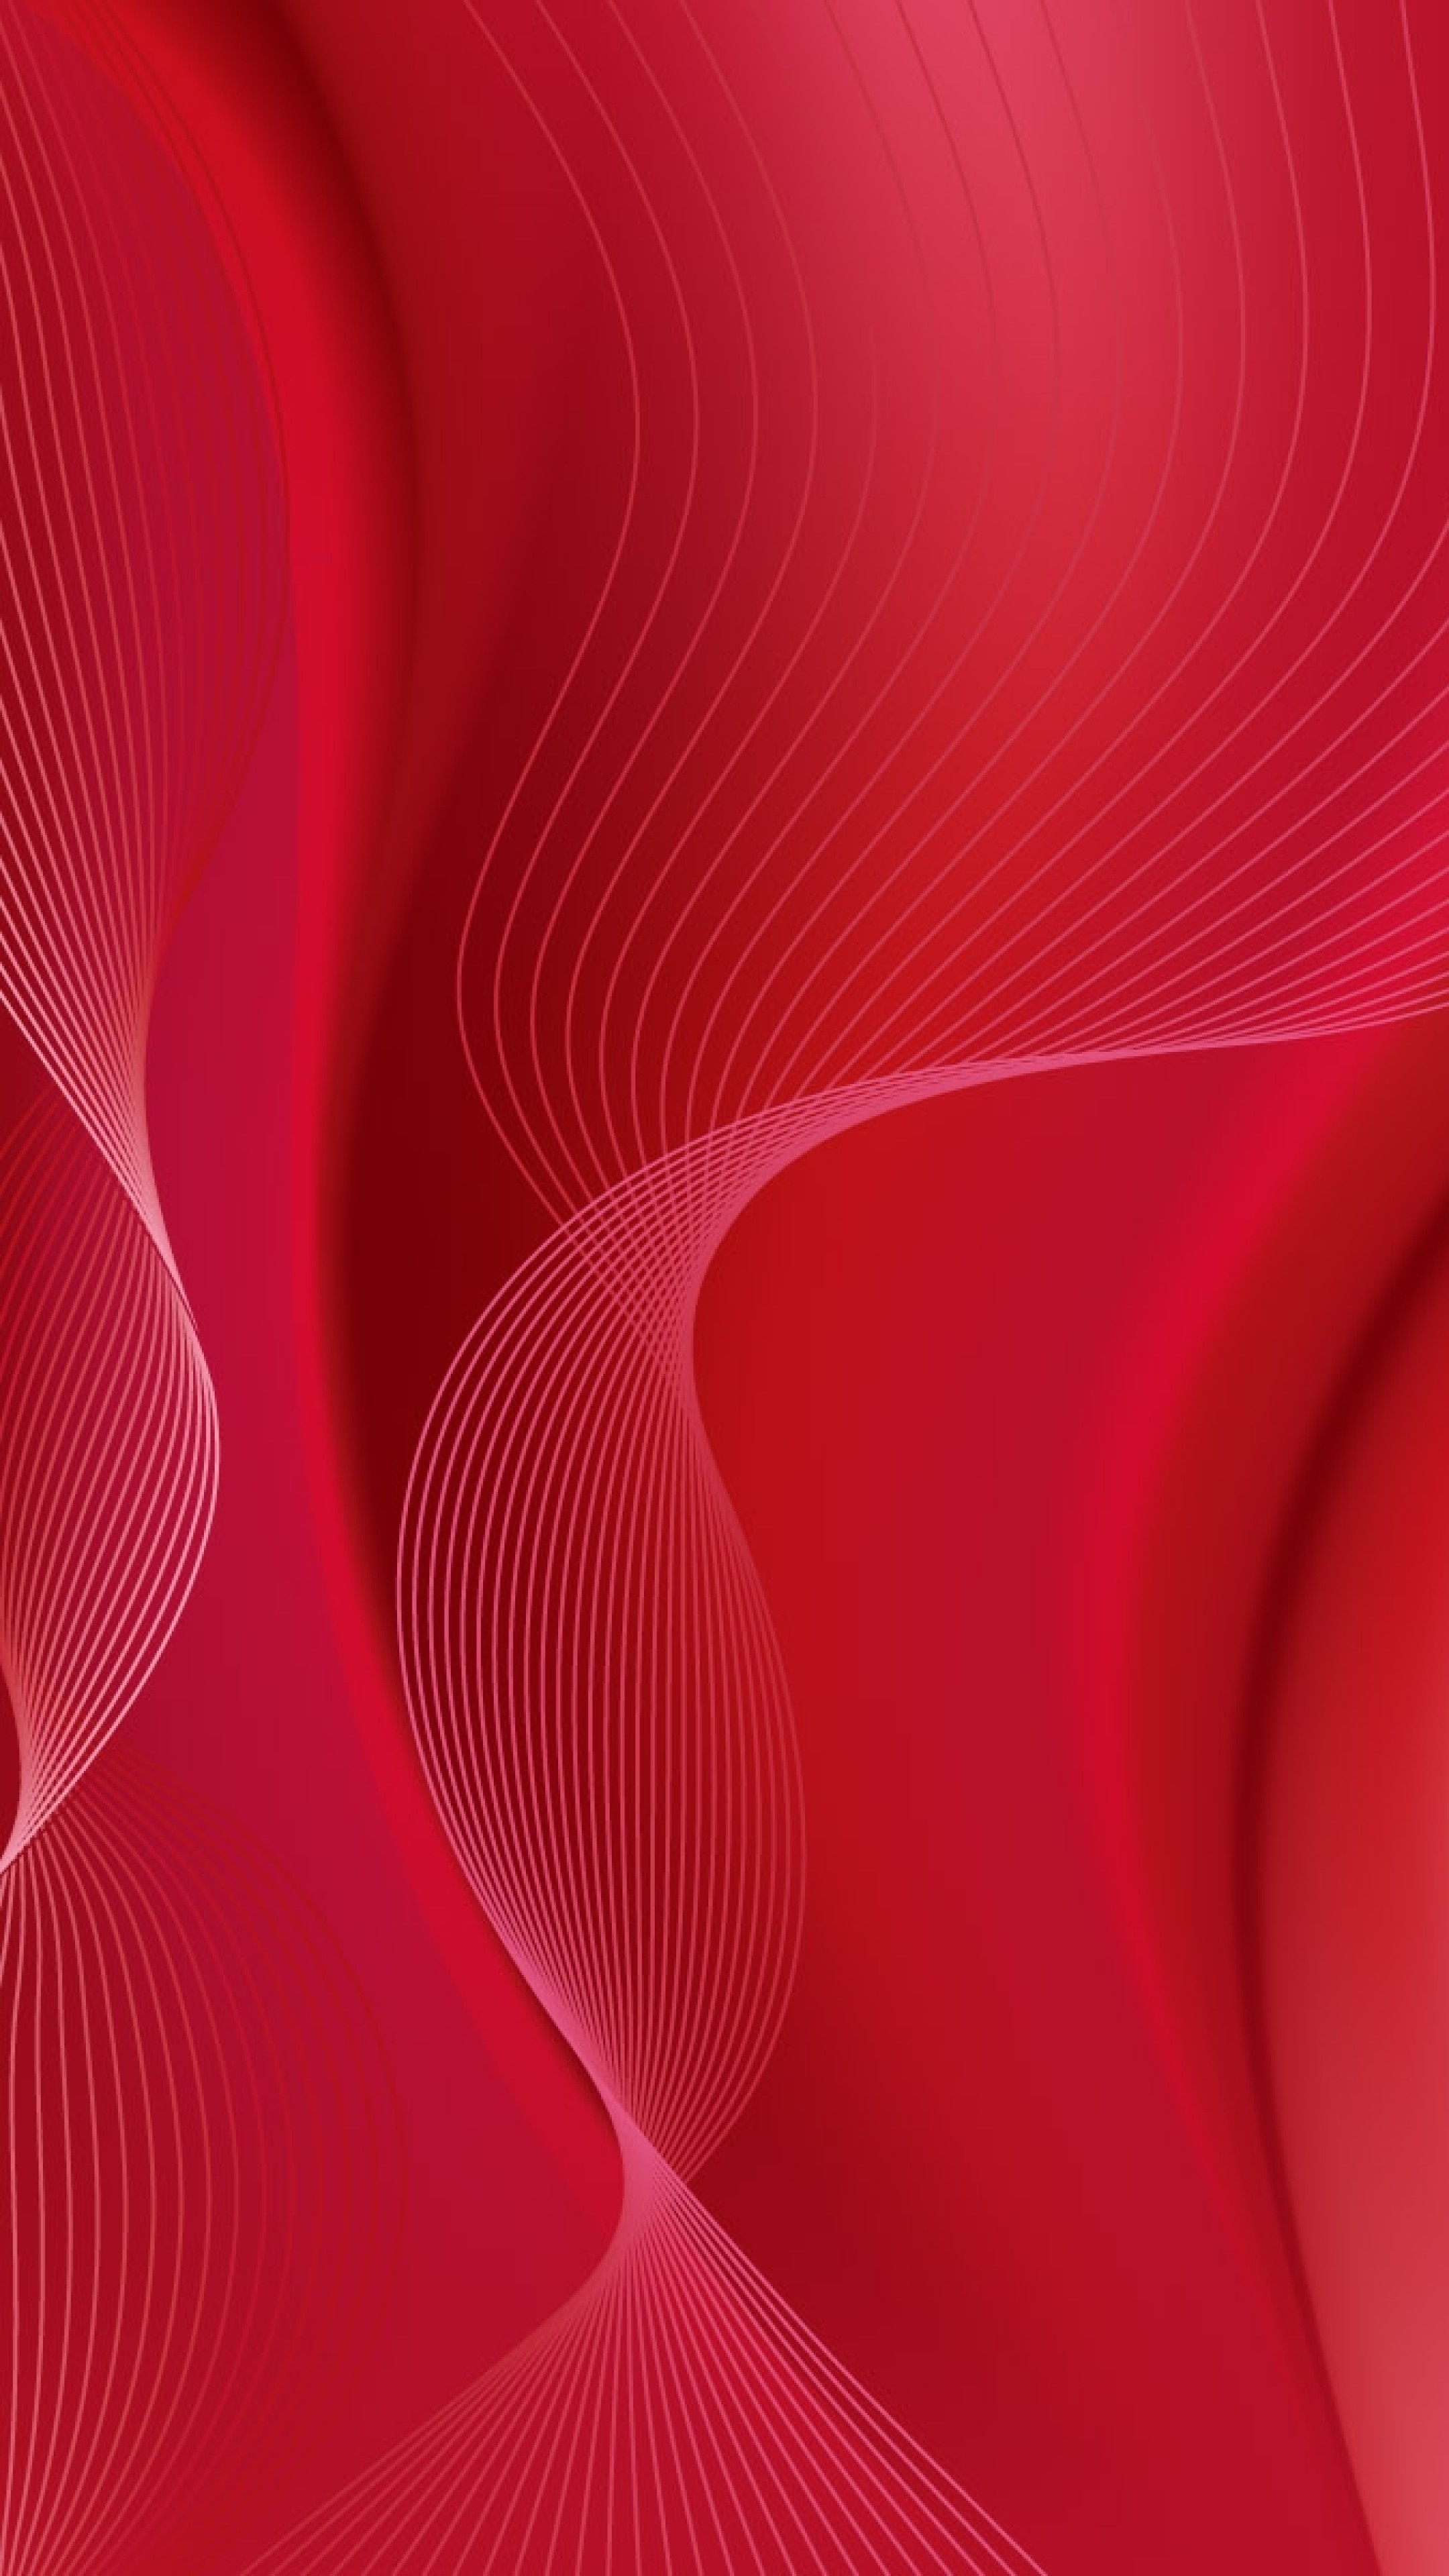 Wallpaper lines, red, background, wave